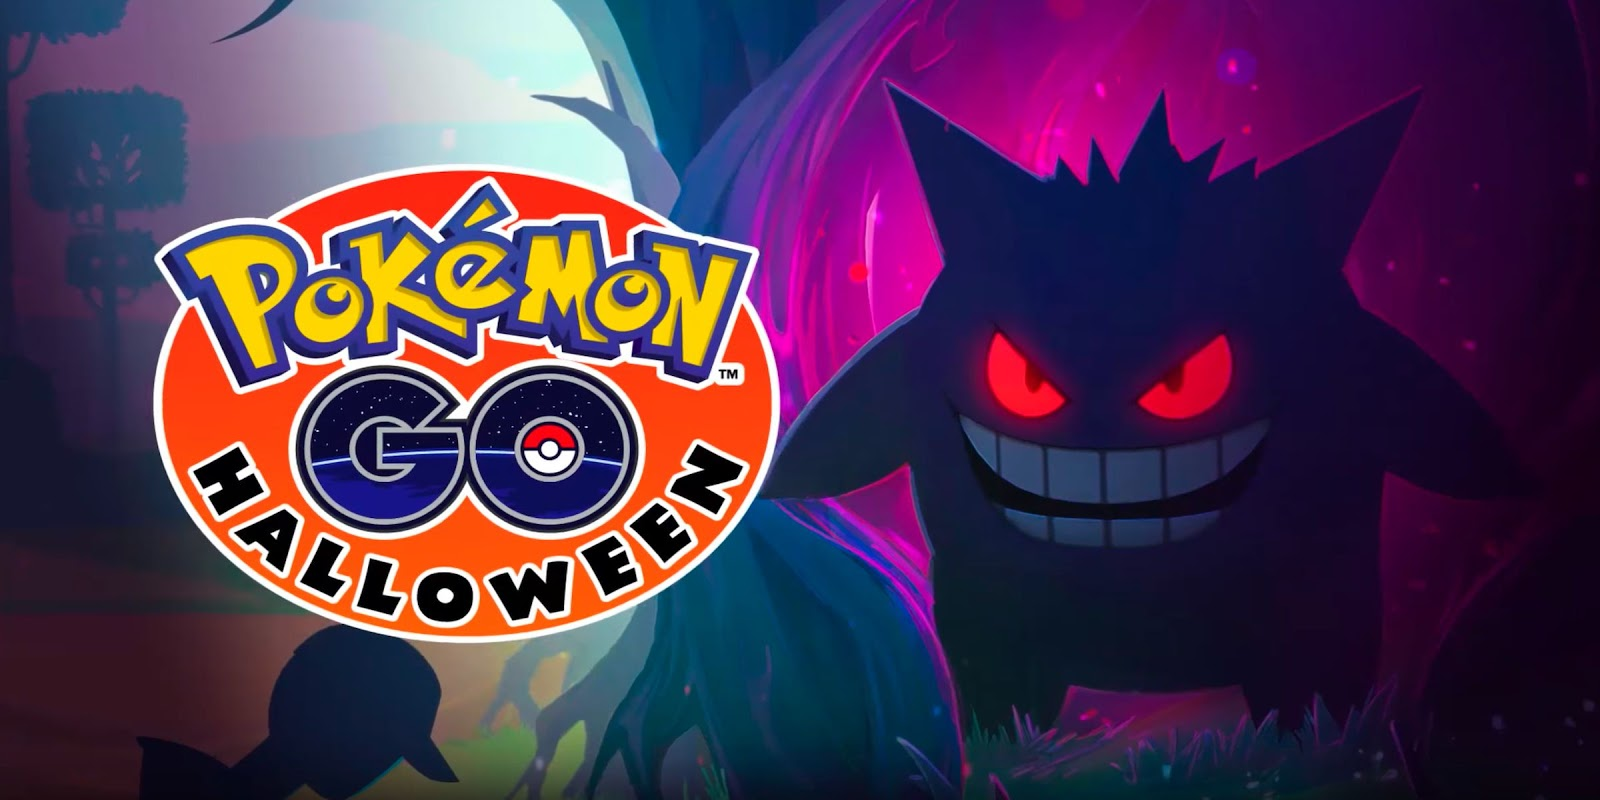 Pokémon Go's Halloween Event Will Brings Extra Candies And More Ghost Type Pokémon